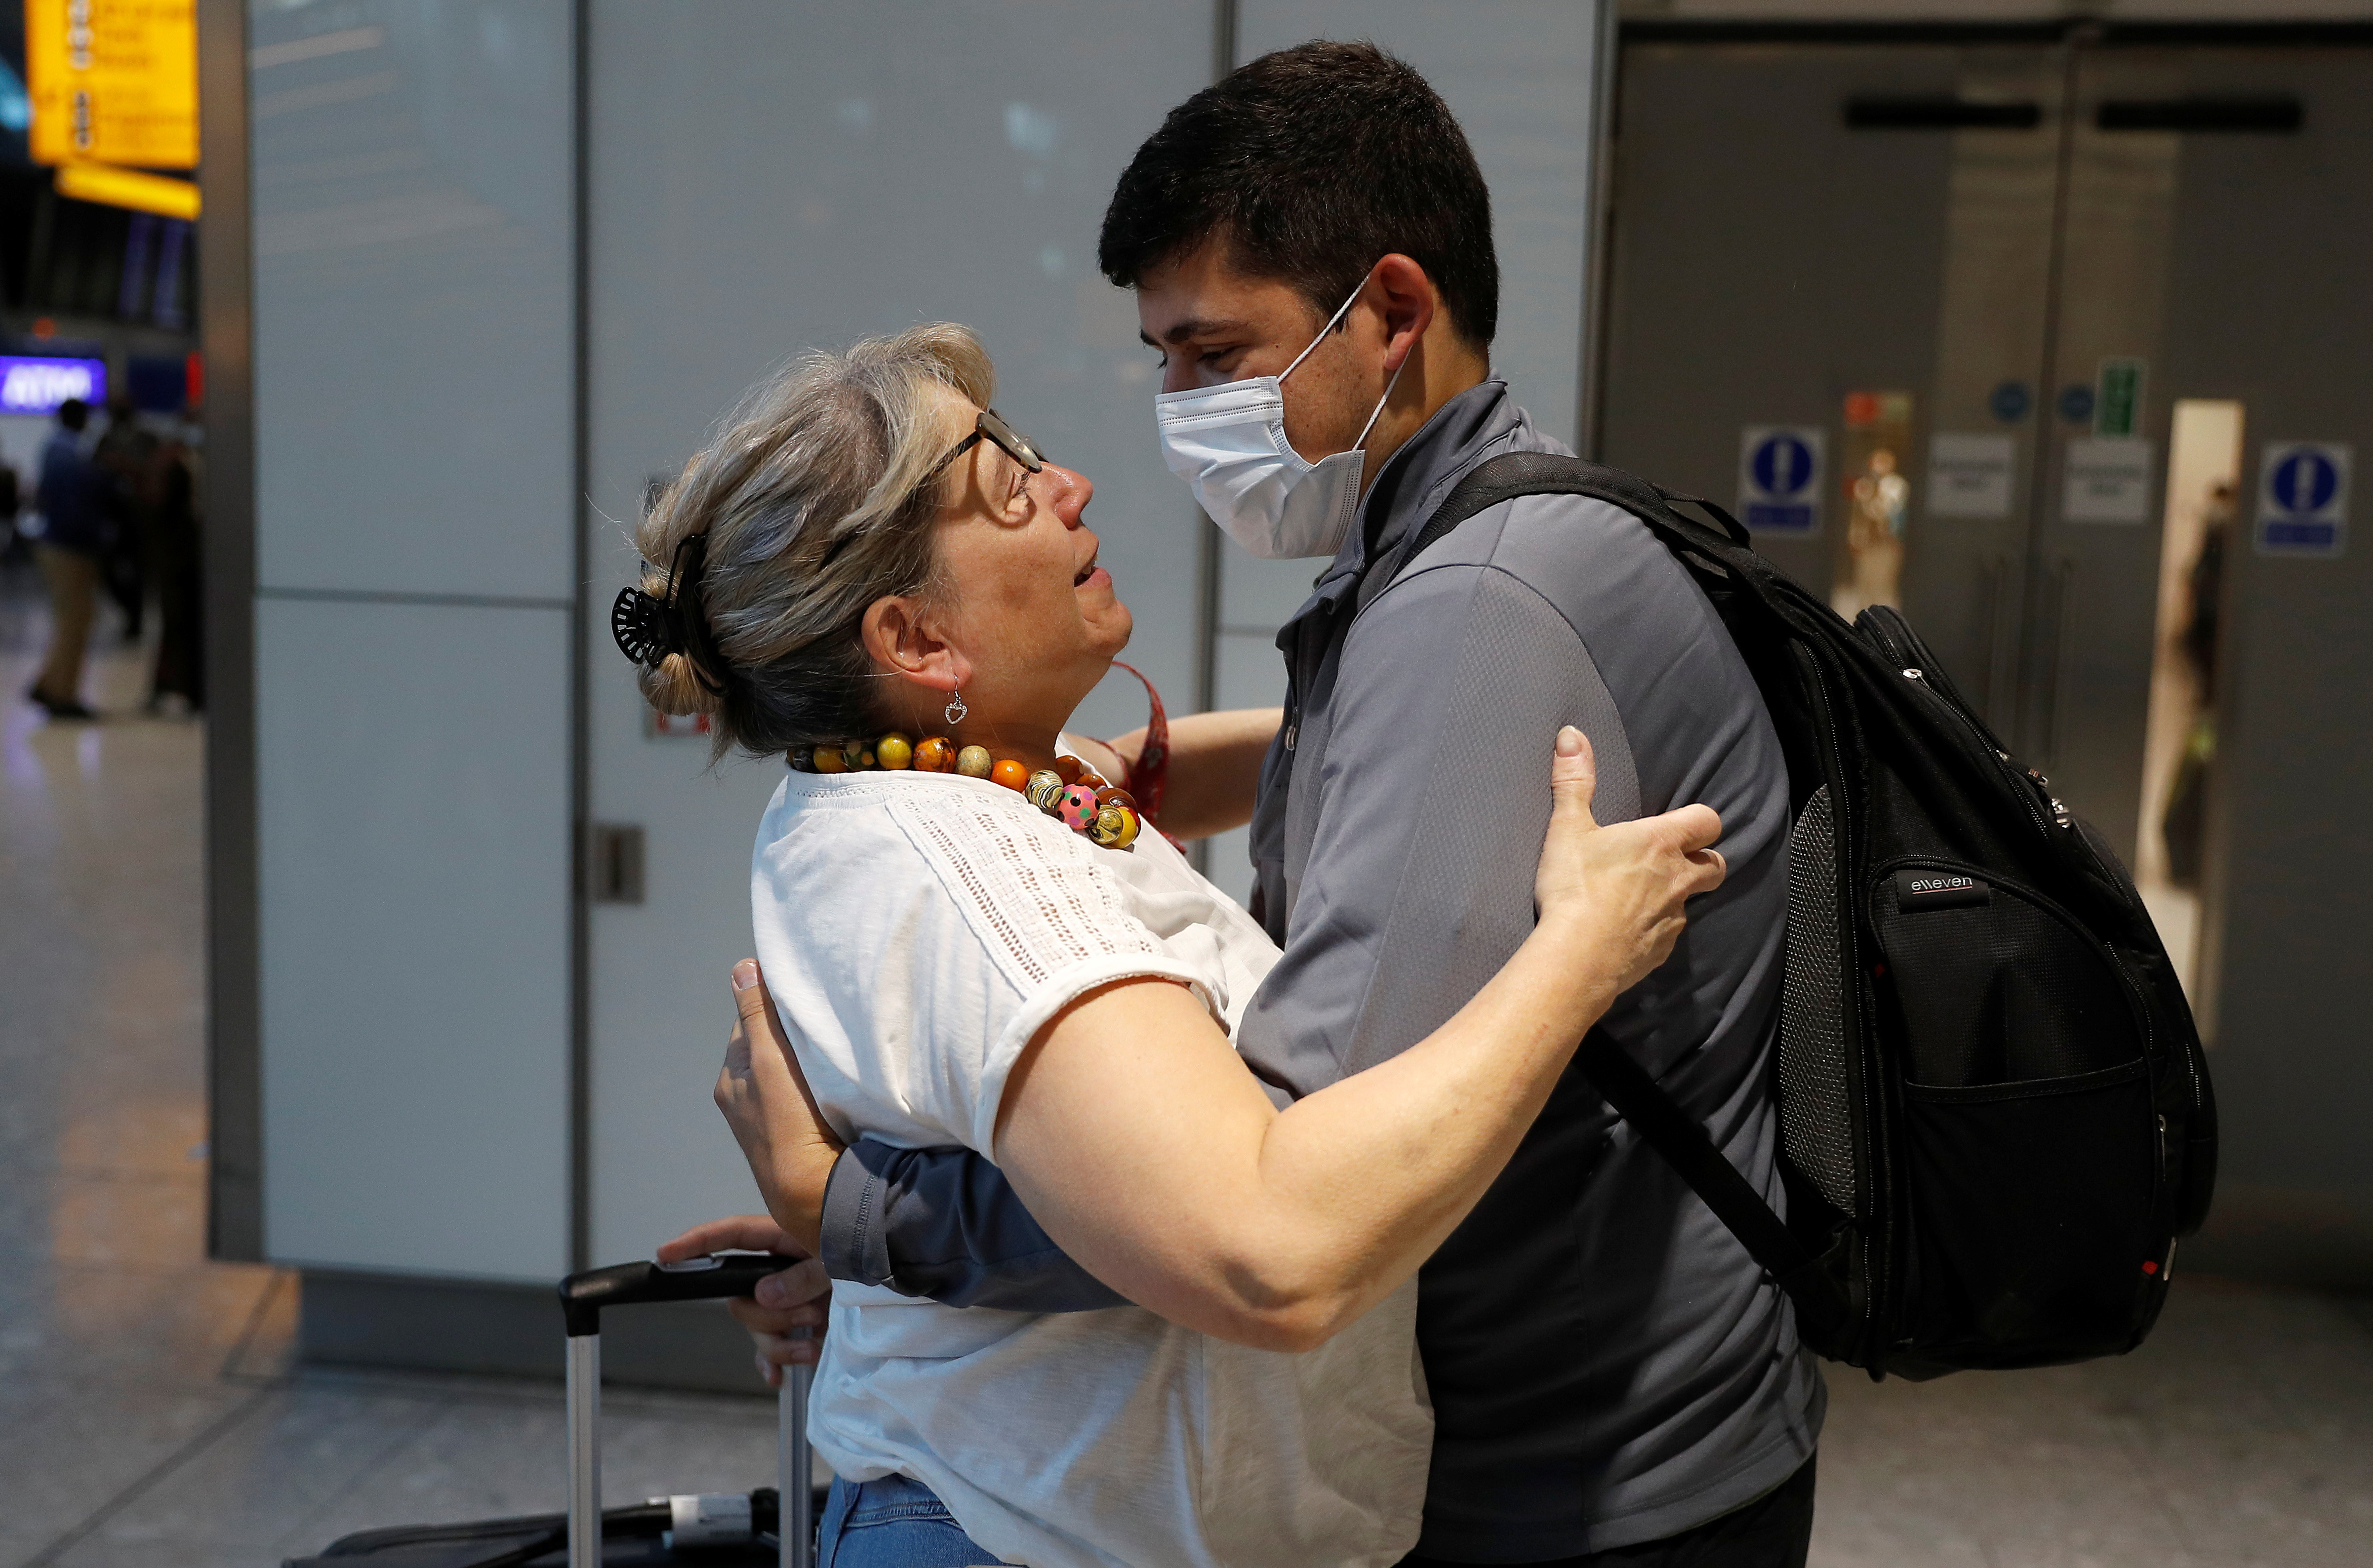 Karen Tyler embraces her son Jonathan who arrived from the U.S., at the International arrivals area of Terminal 5 in London's Heathrow Airport, Britain, August 2, 2021.  REUTERS/Peter Nicholls